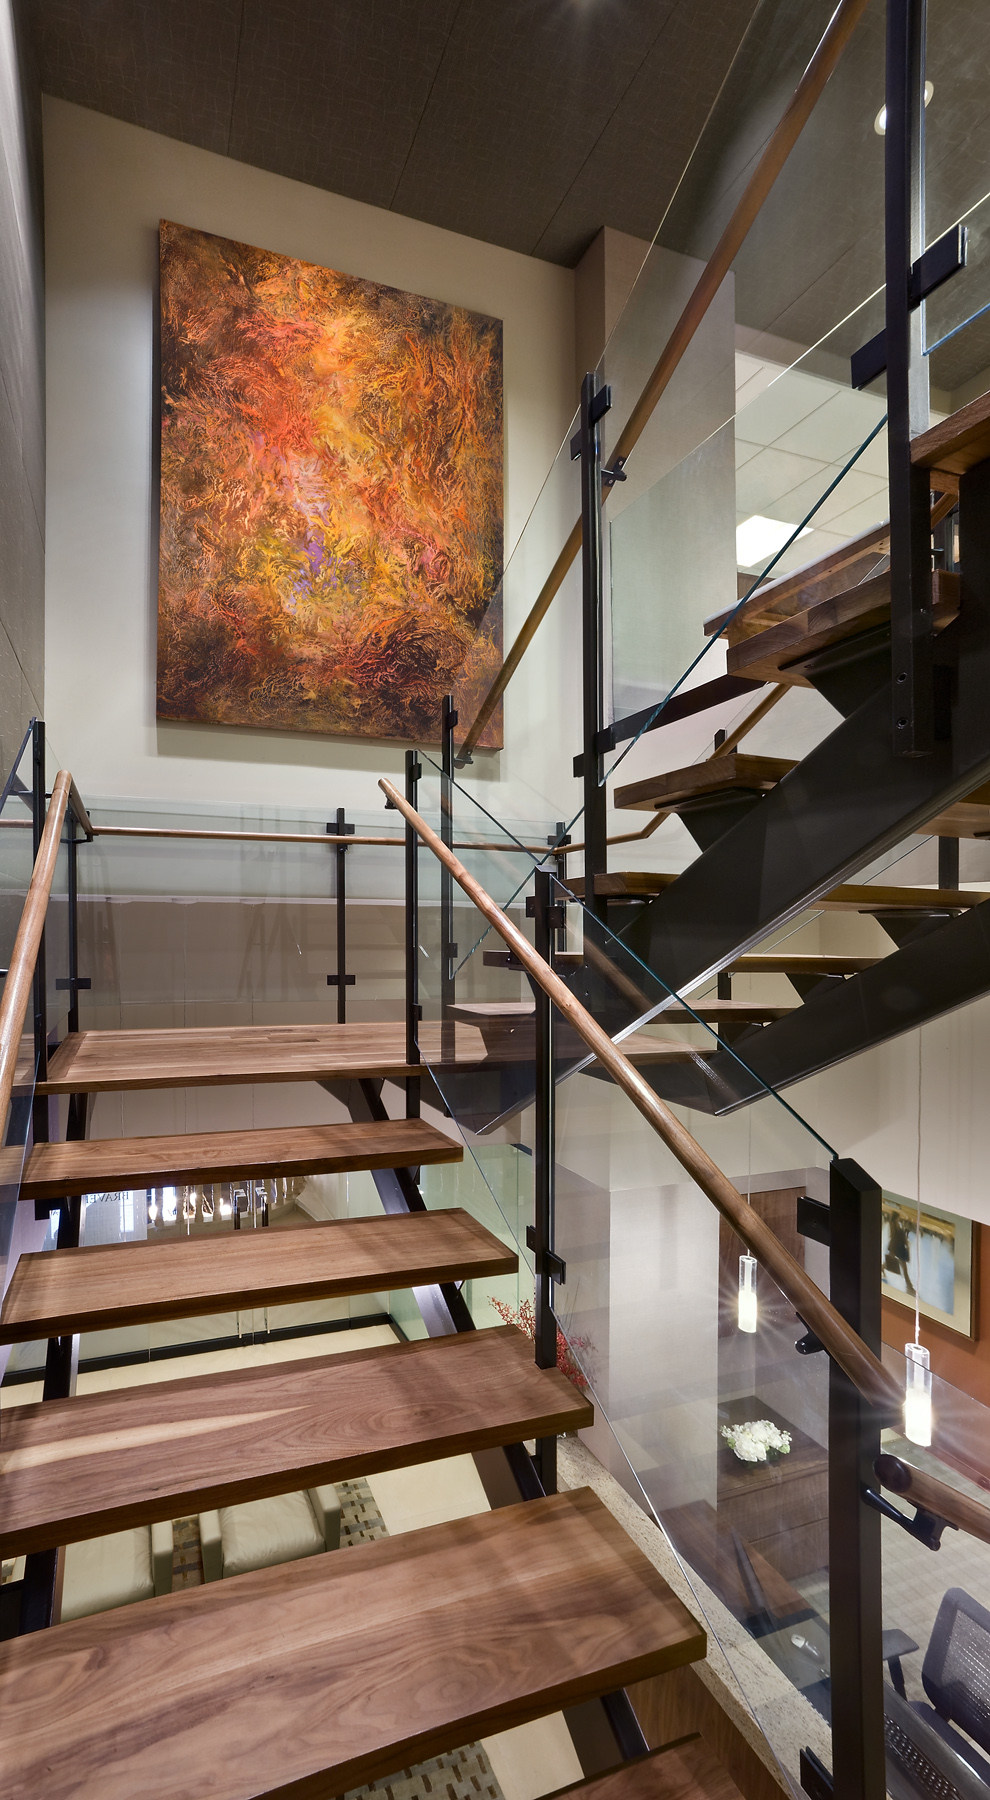 Tobin Parnes Design. Workplace Design. Office Design. Stair Design